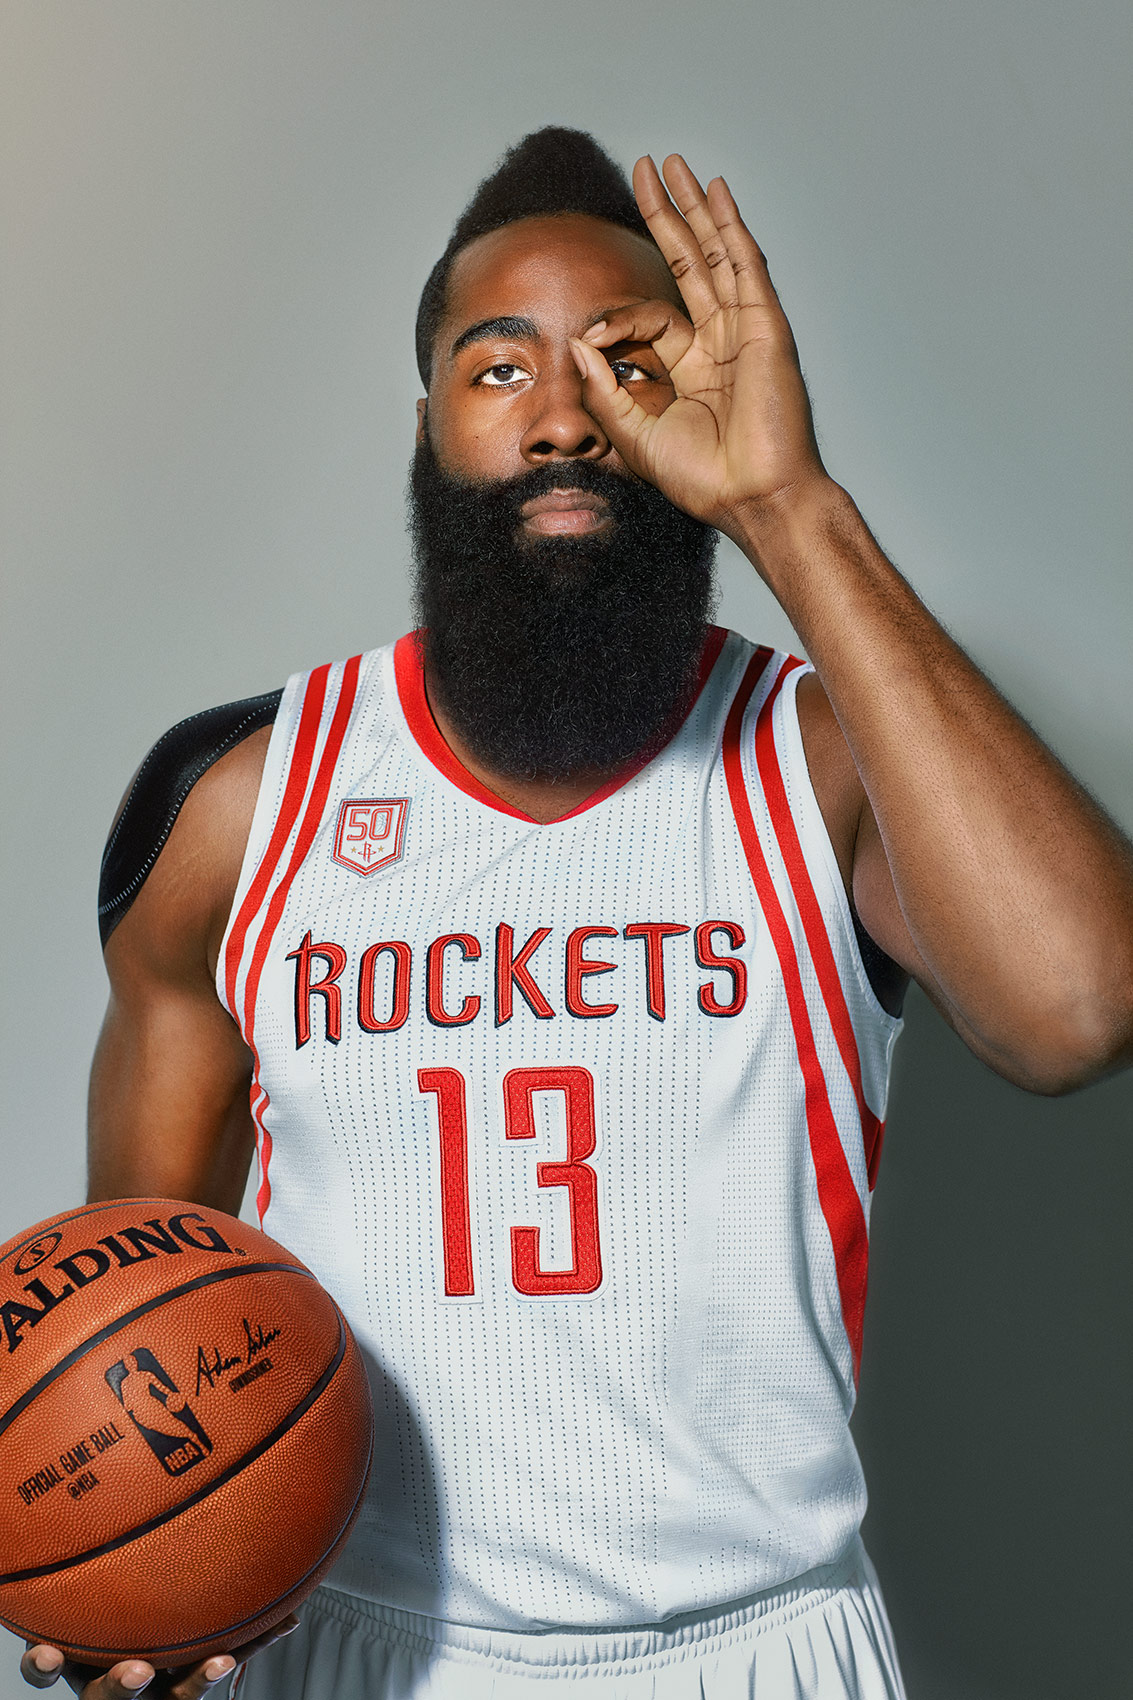 20161103_james-harden_0912-Final-FLAIR-web